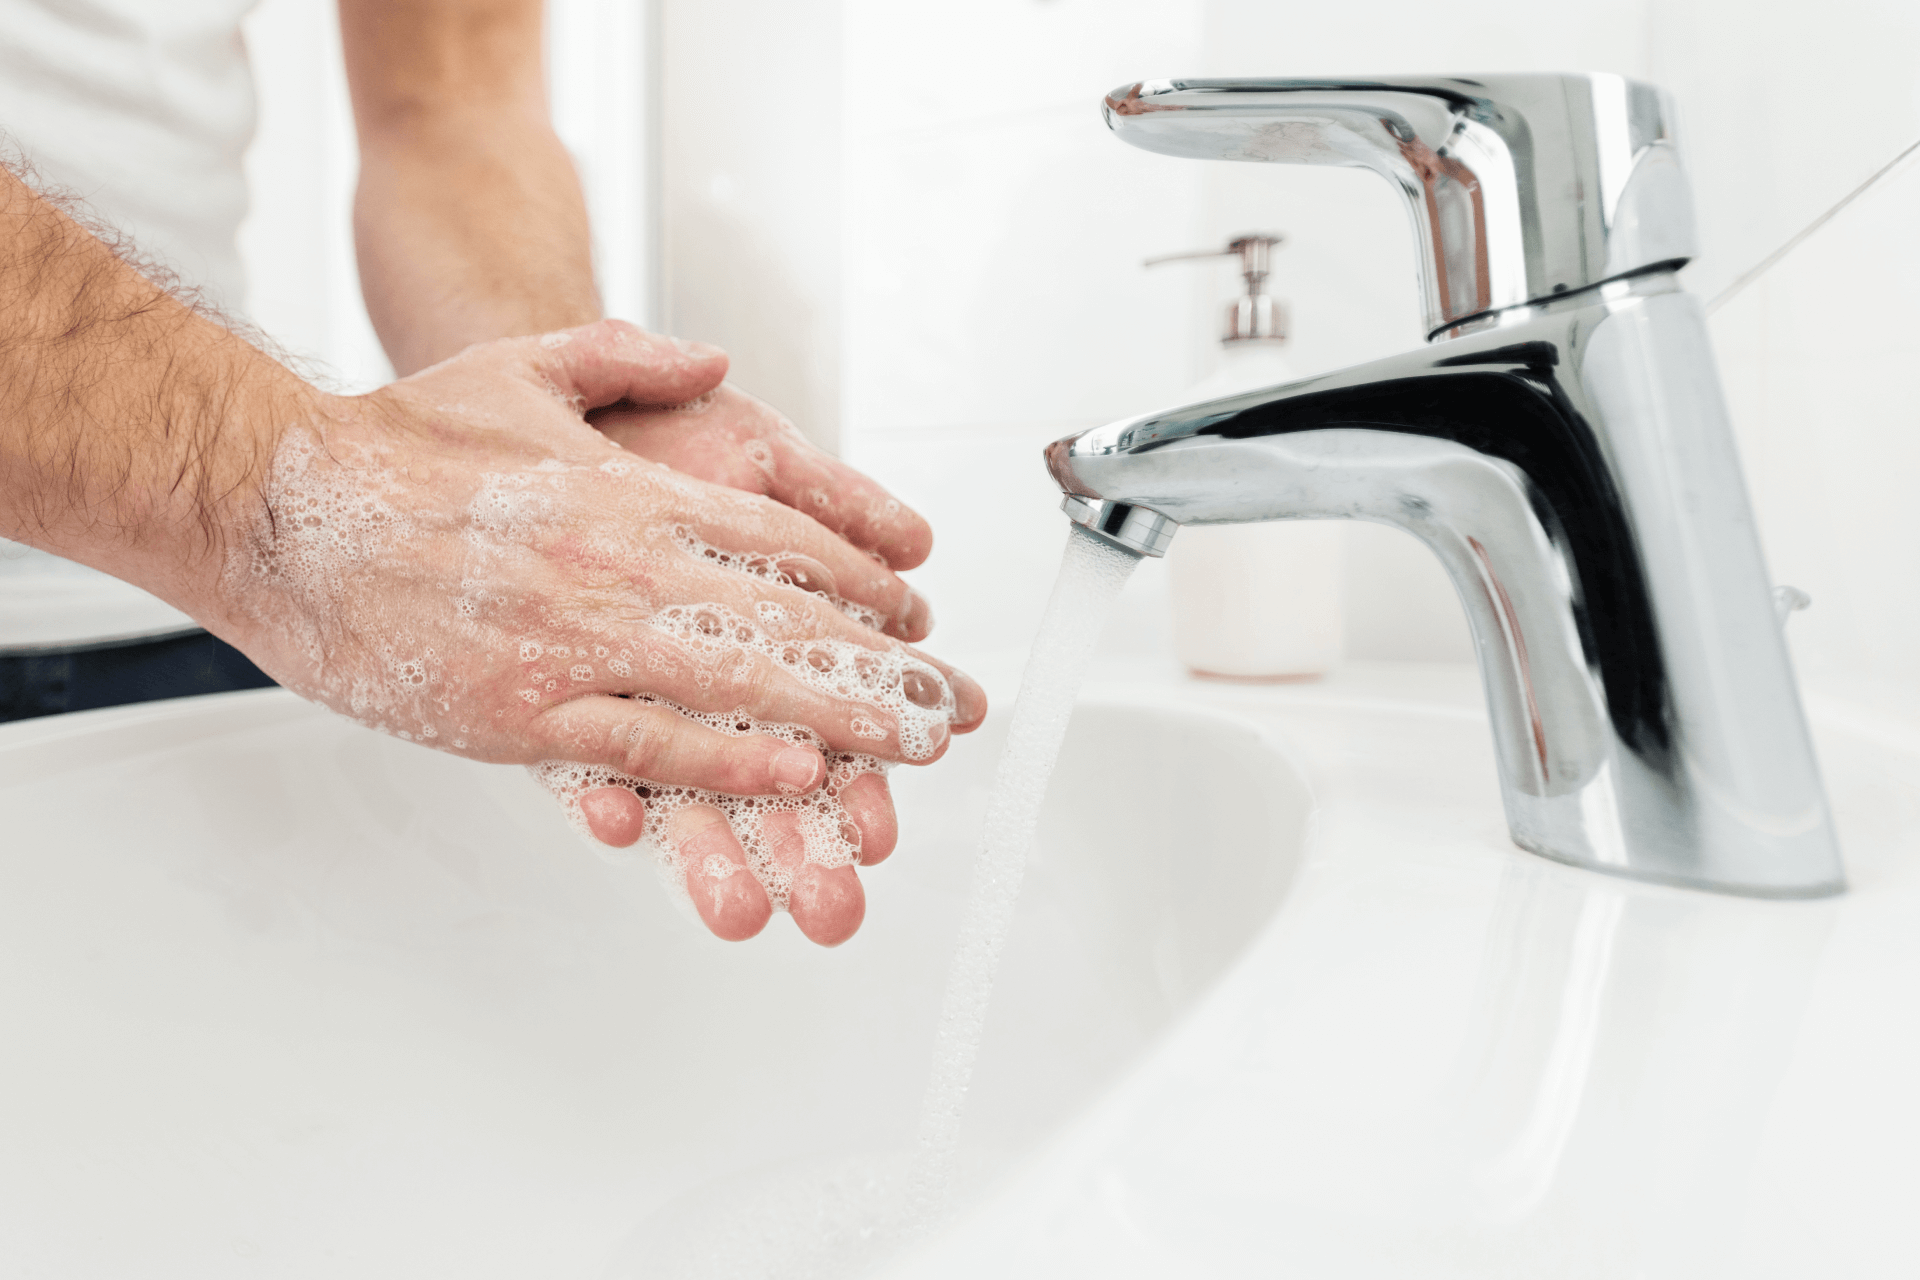 Landvetter Parkering | Coronavirus: Wash your hands properly